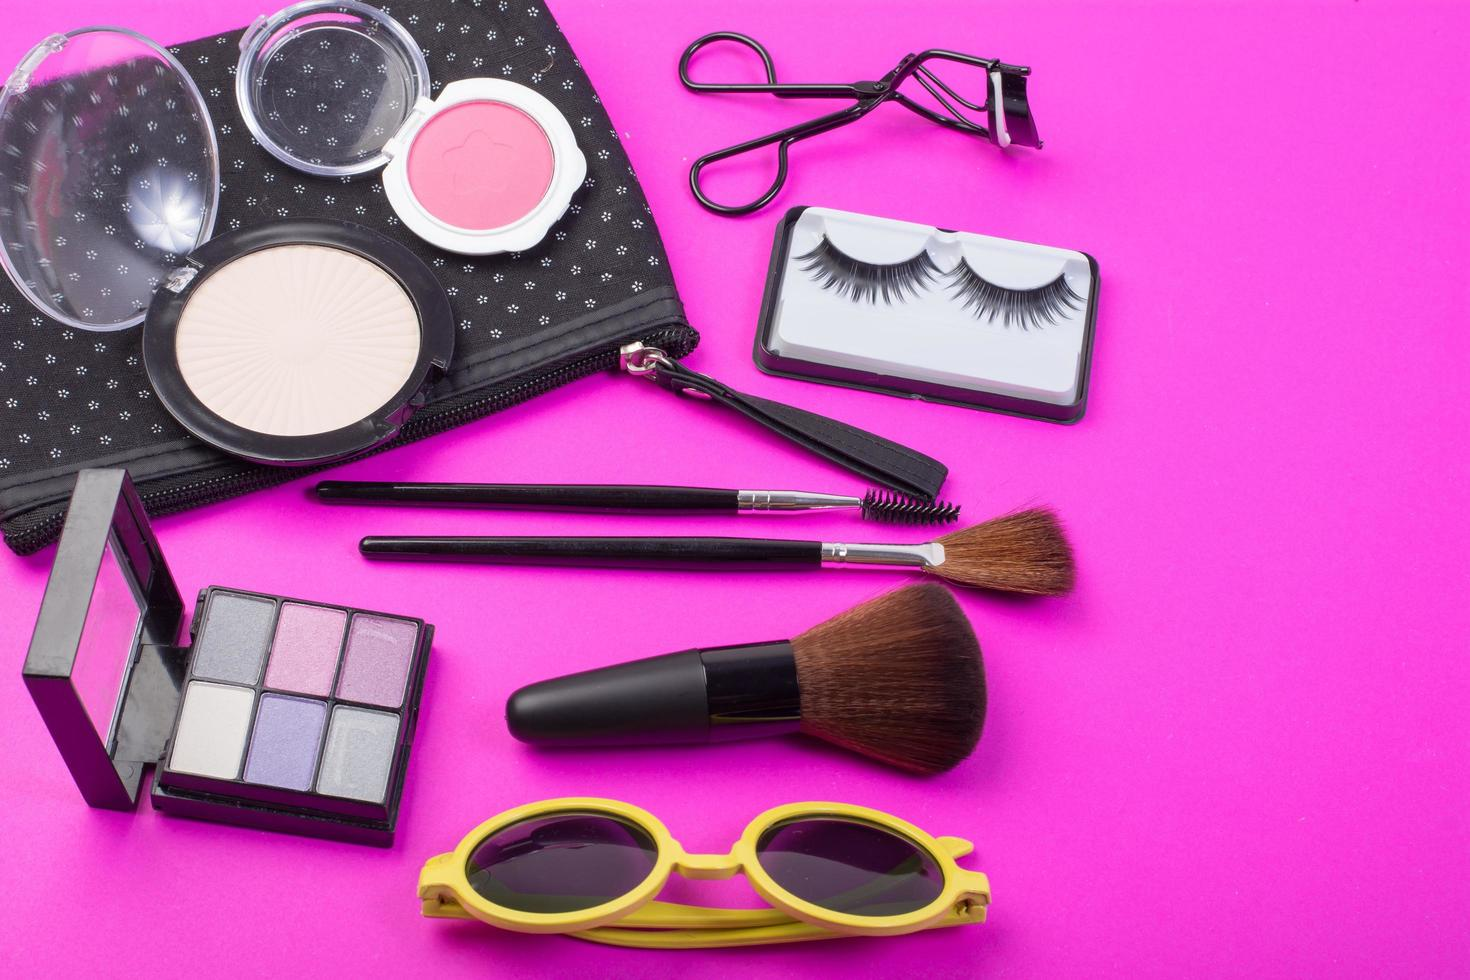 Cosmetic beauty products on pink background photo